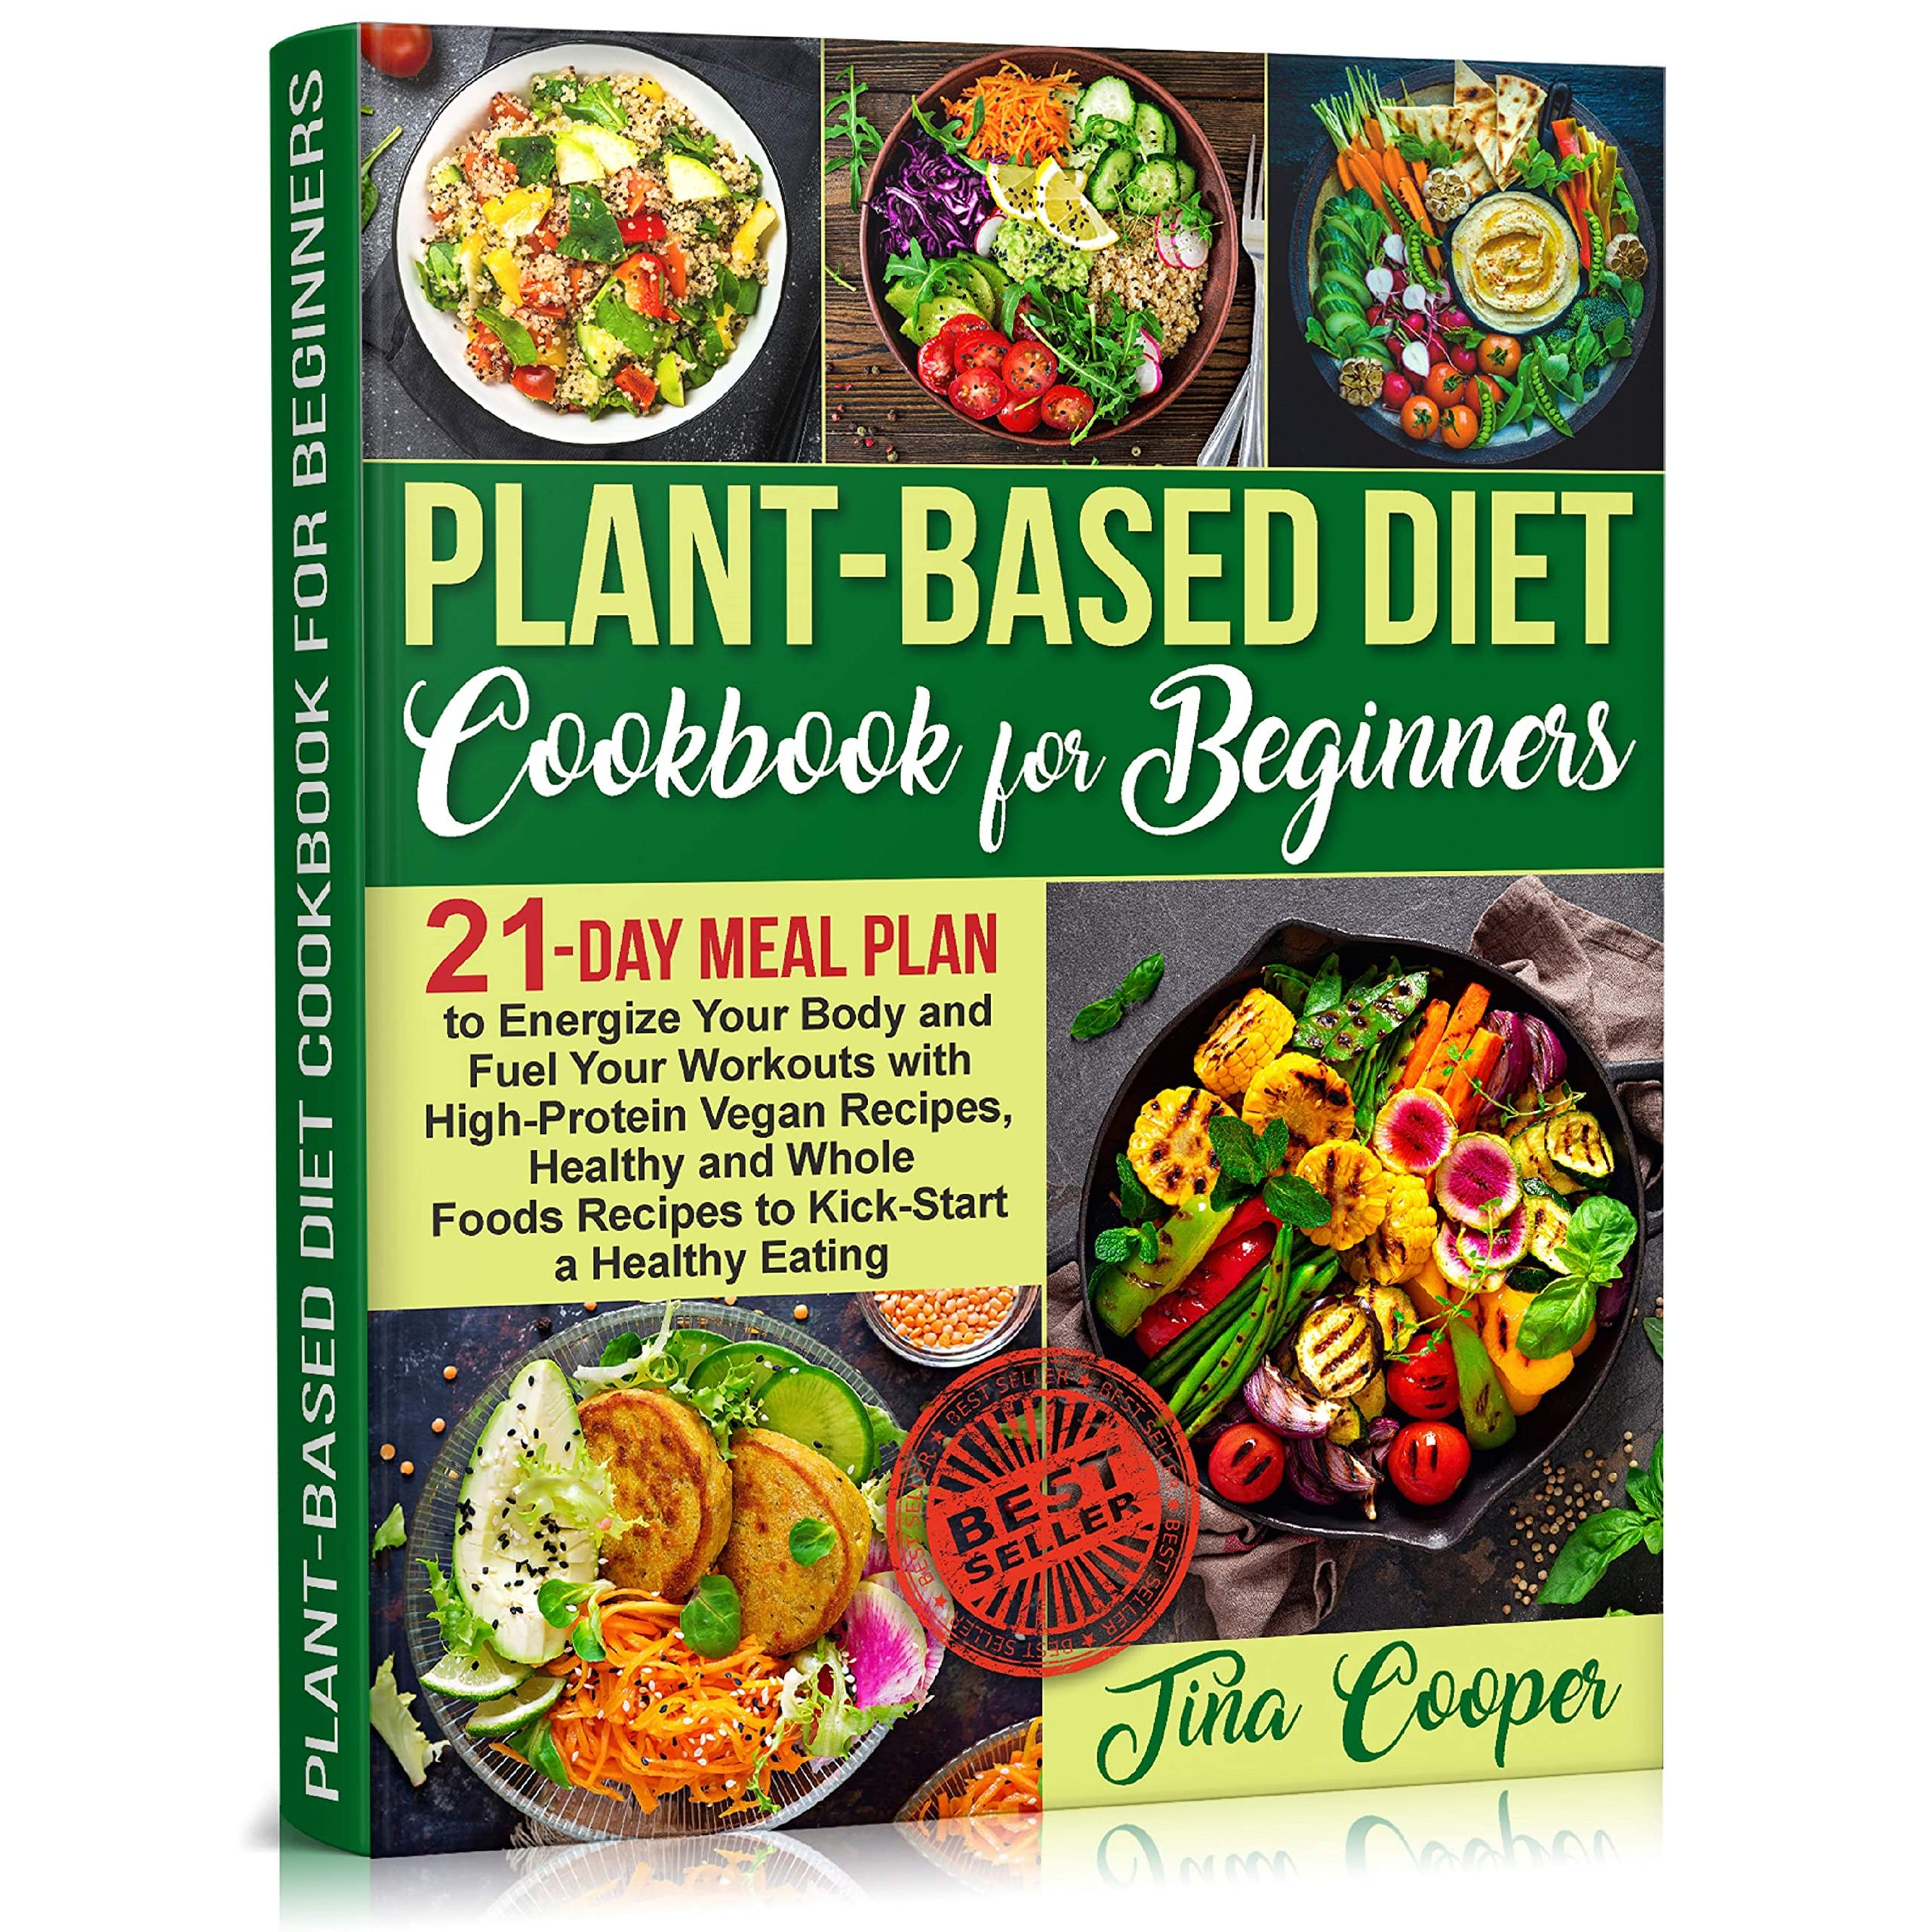 Plant Based Diet Cookbook For Beginners 21 Day Meal Plan To Energize Your Body And Fuel Your Workouts With High Protein Vegan Recipes Healthy And Whole Foods Recipes To Kick Start A Healthy Eating By Tina